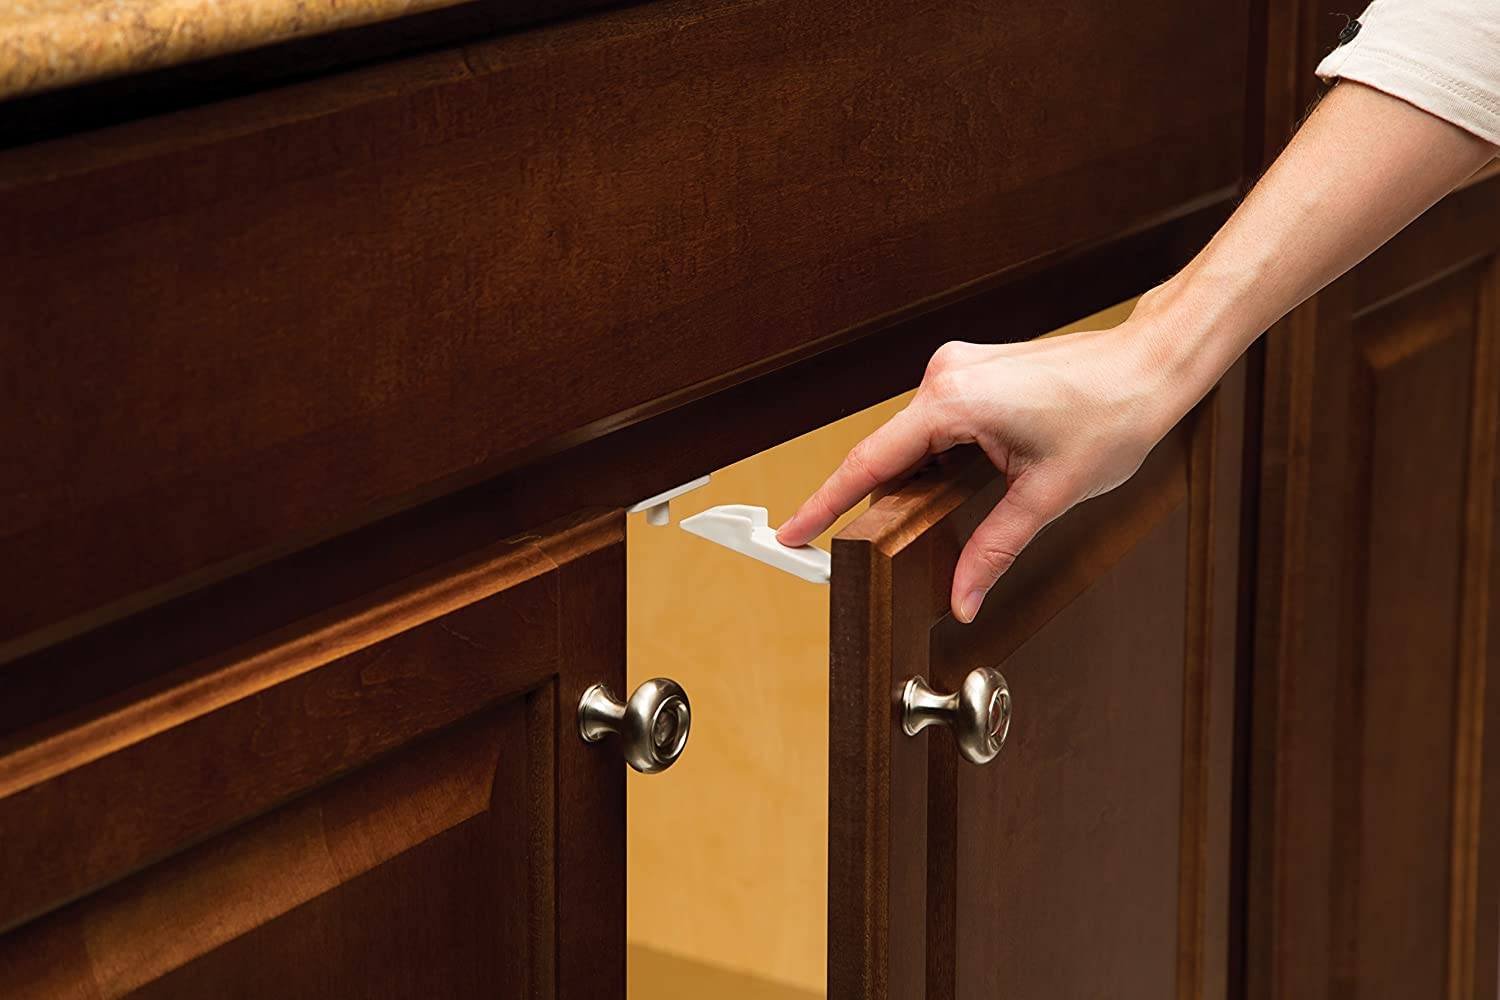 Safety 1st Finger Guard Cabinet and Drawer Latches HS180